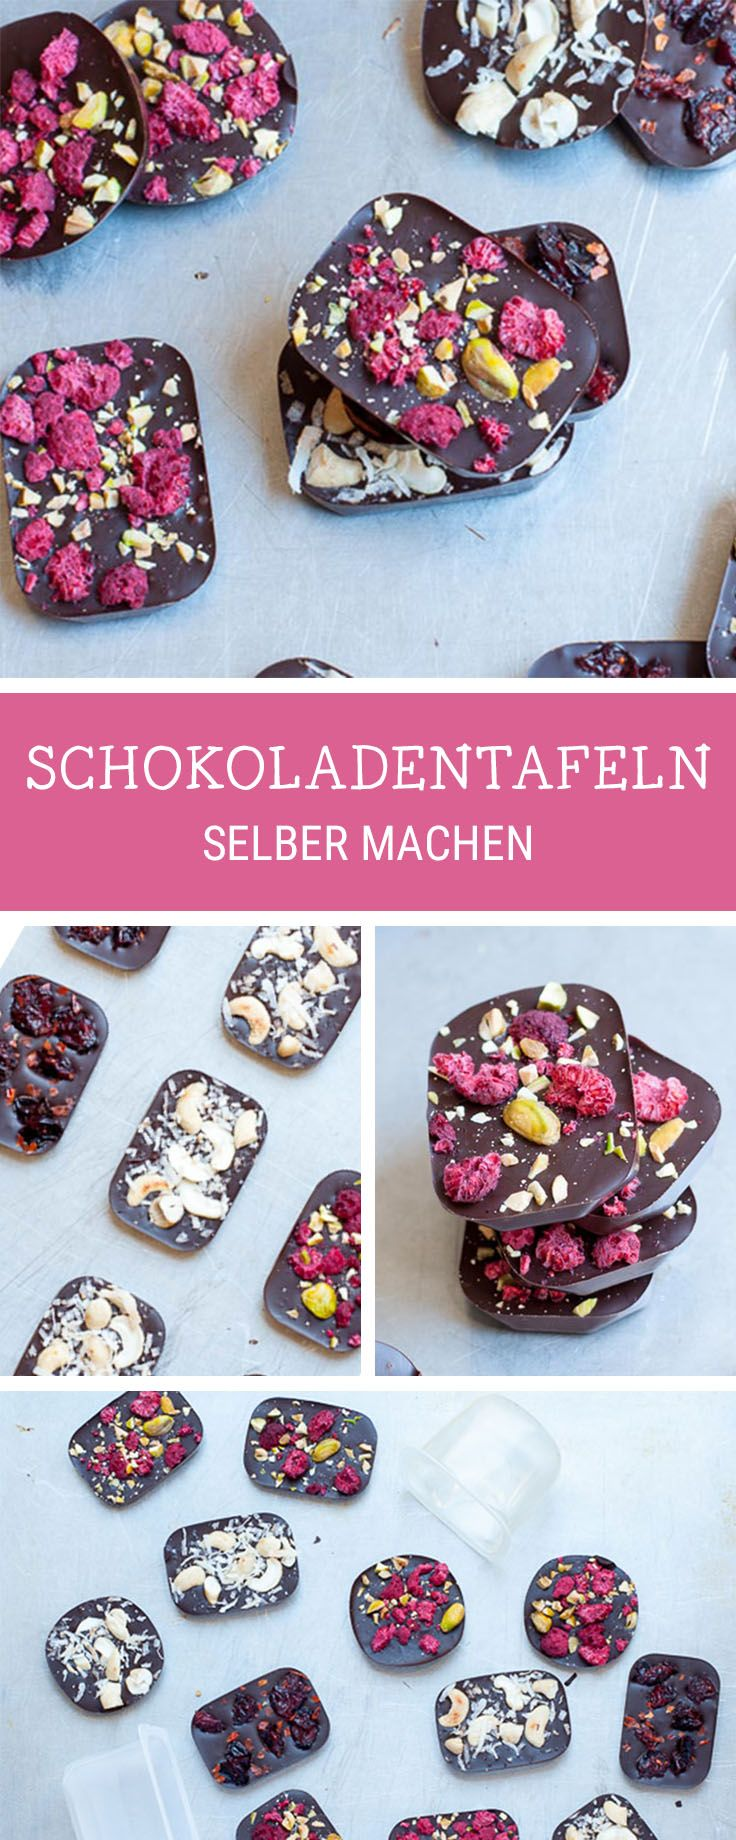 Schokolade selbermachen: Schokotafeln mit Superfood / sweet recipe for homemade chocolate bars with superfood via DaWanda.com